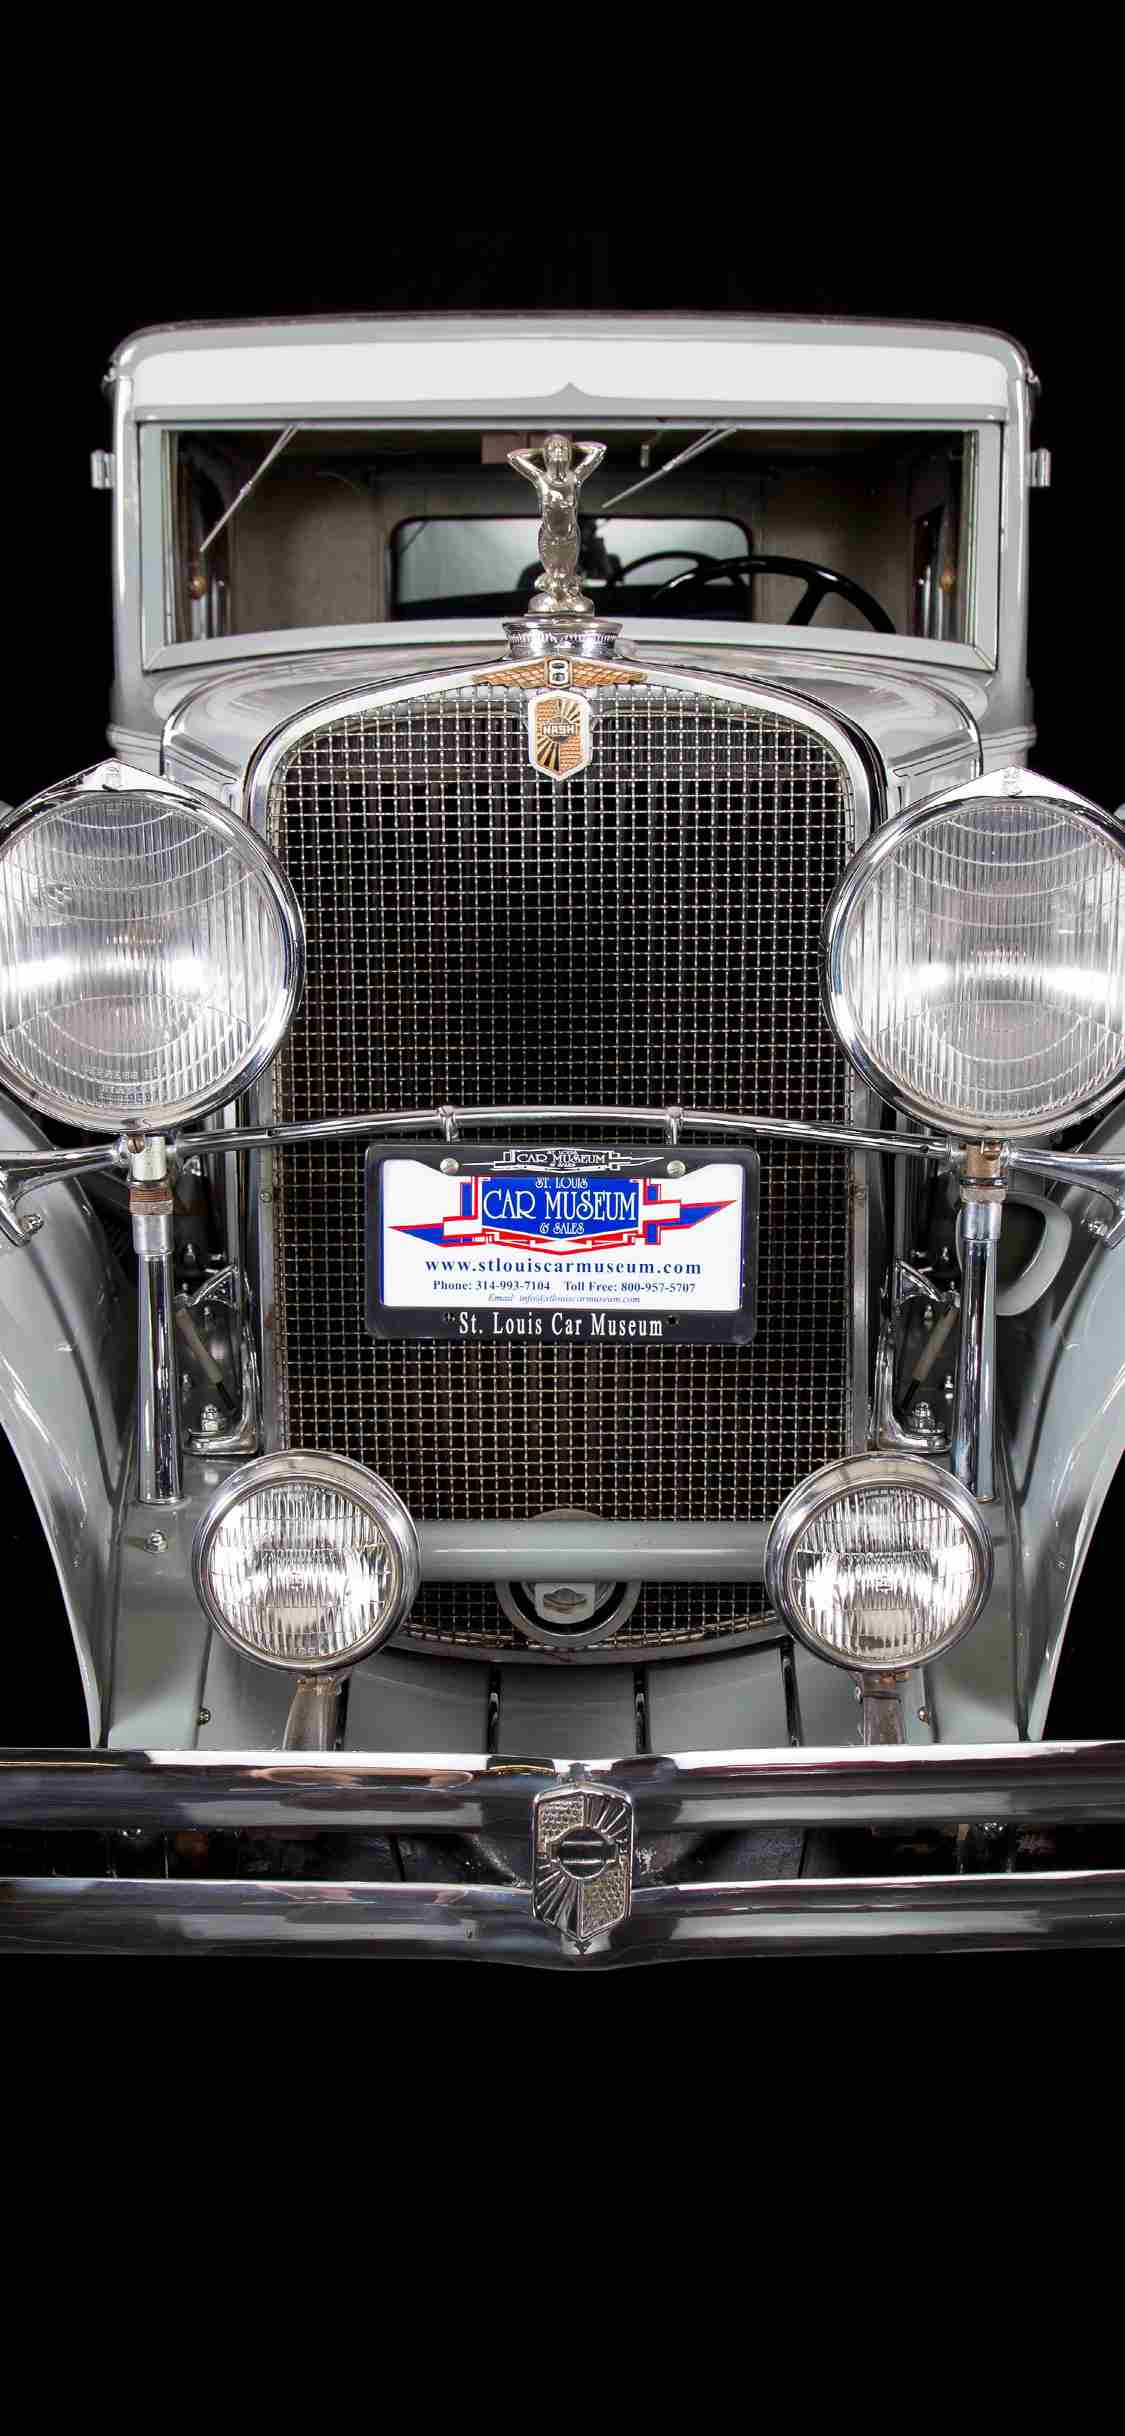 1931 Nash Eight-99 Victoria Sedan wallpaper free download